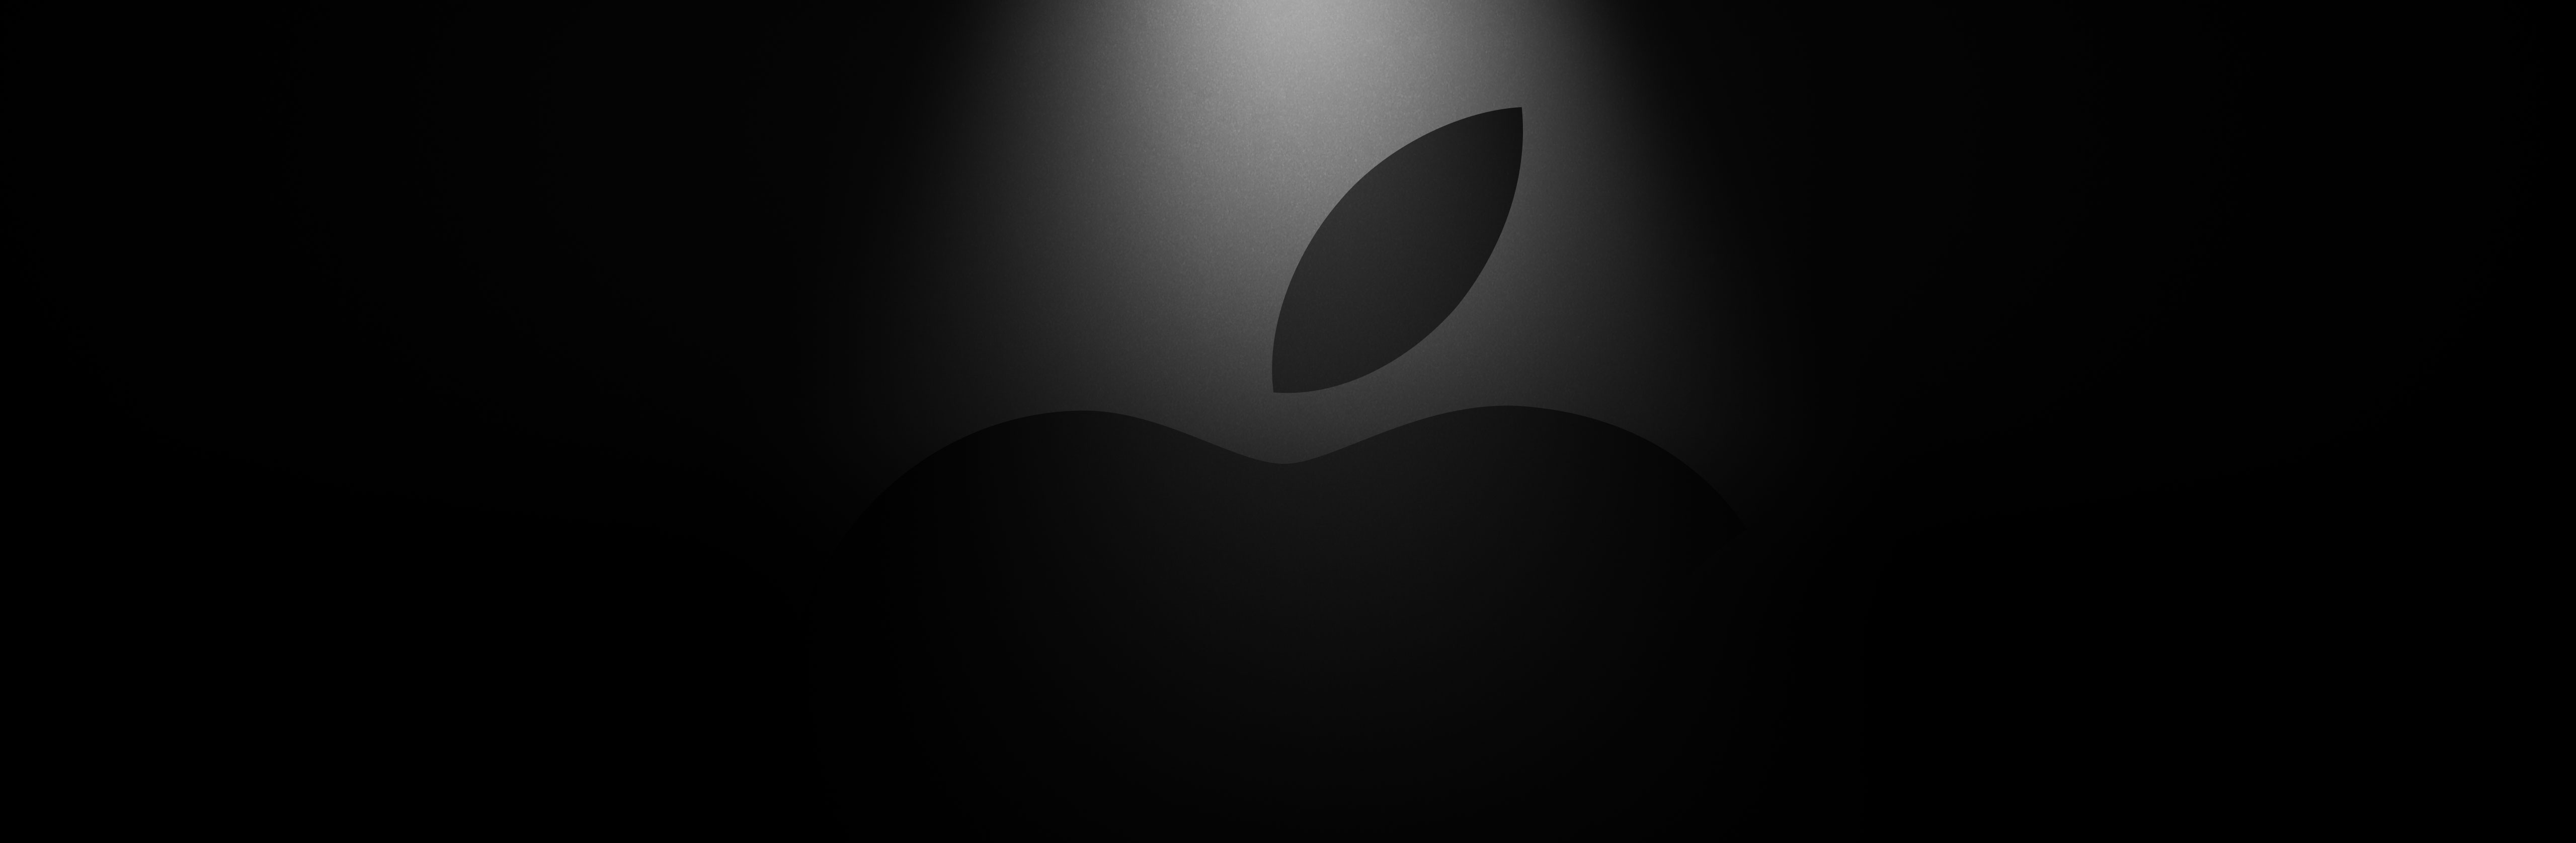 LIVE: Apple conference - the premiere of the new VOD service